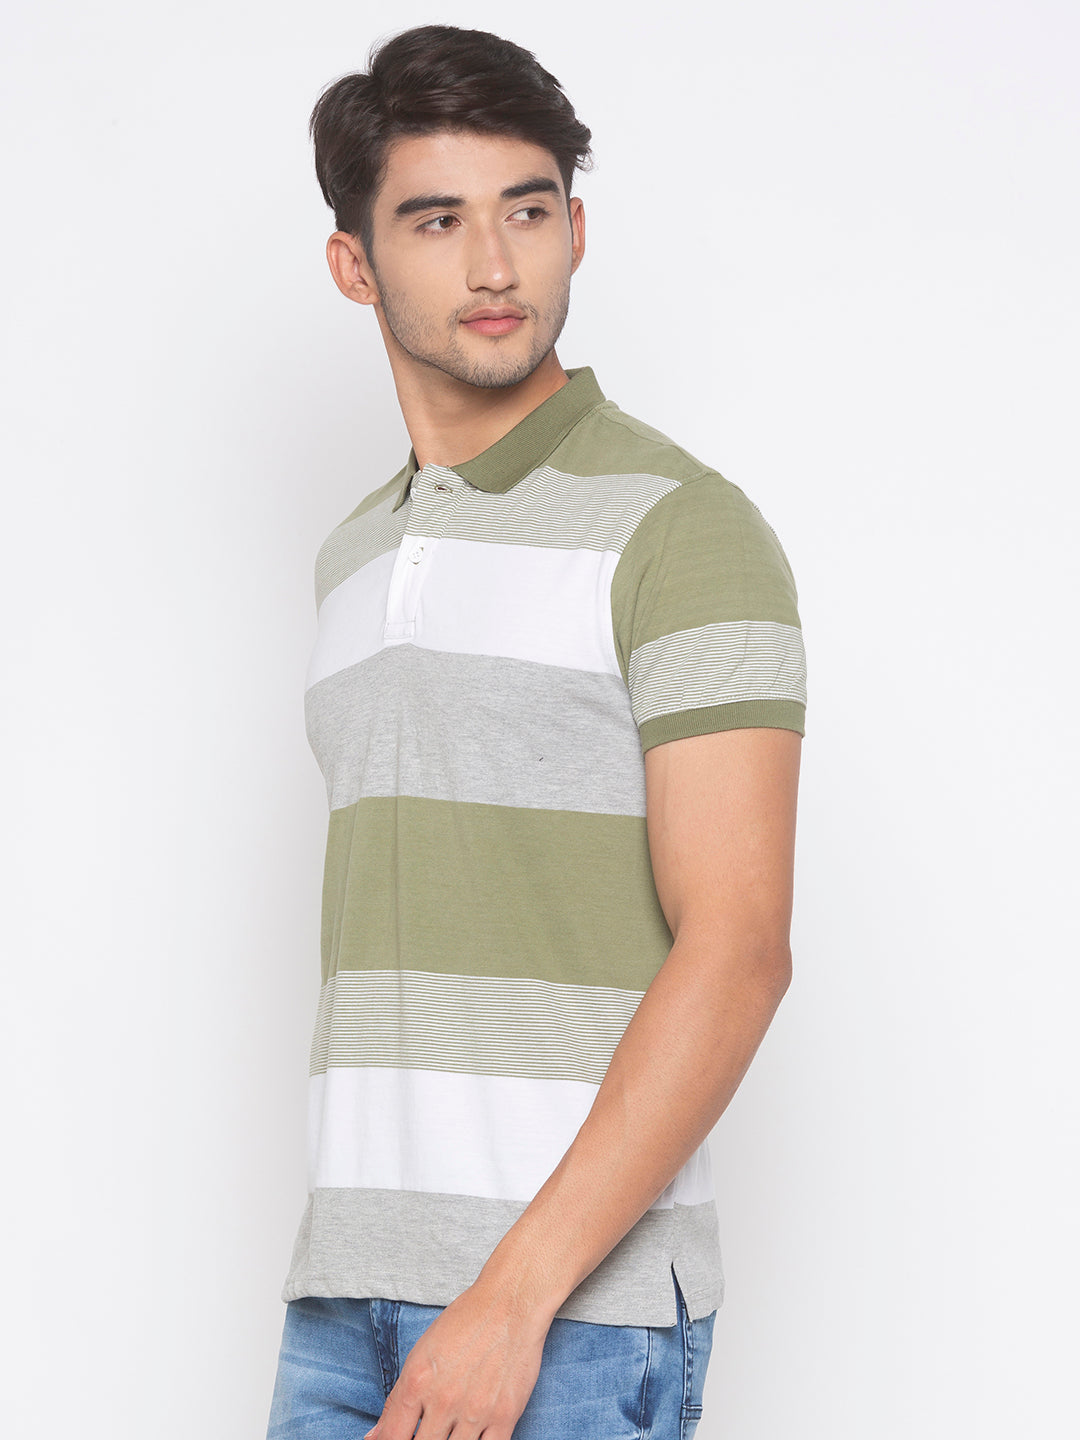 Globus Olive & White Striped T-Shirt-2